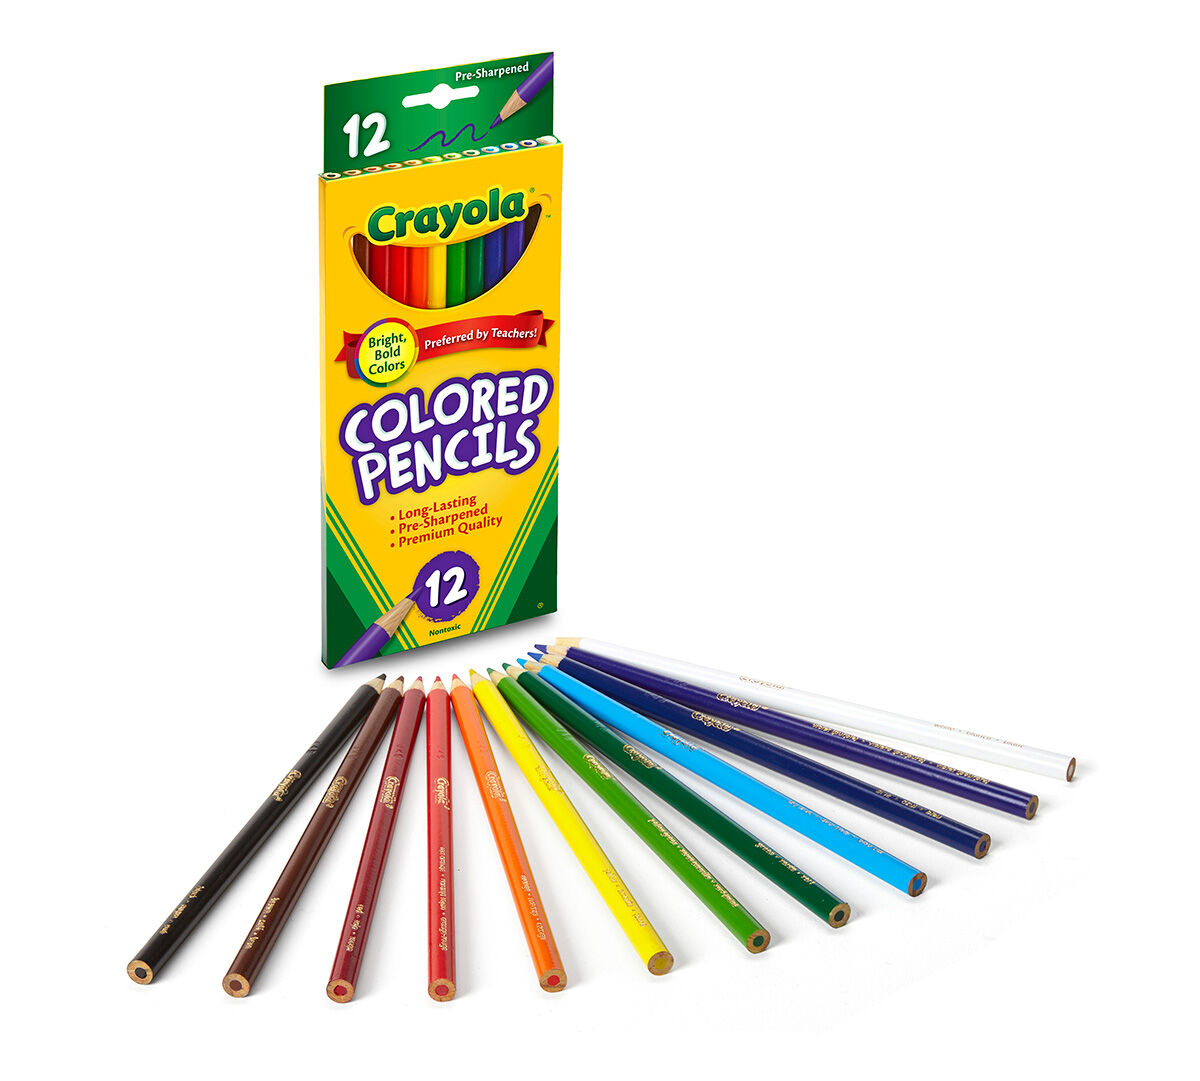 Crayola Colored Pencils Assorted Colors Pre Sharpened Adult Coloring 12 Count